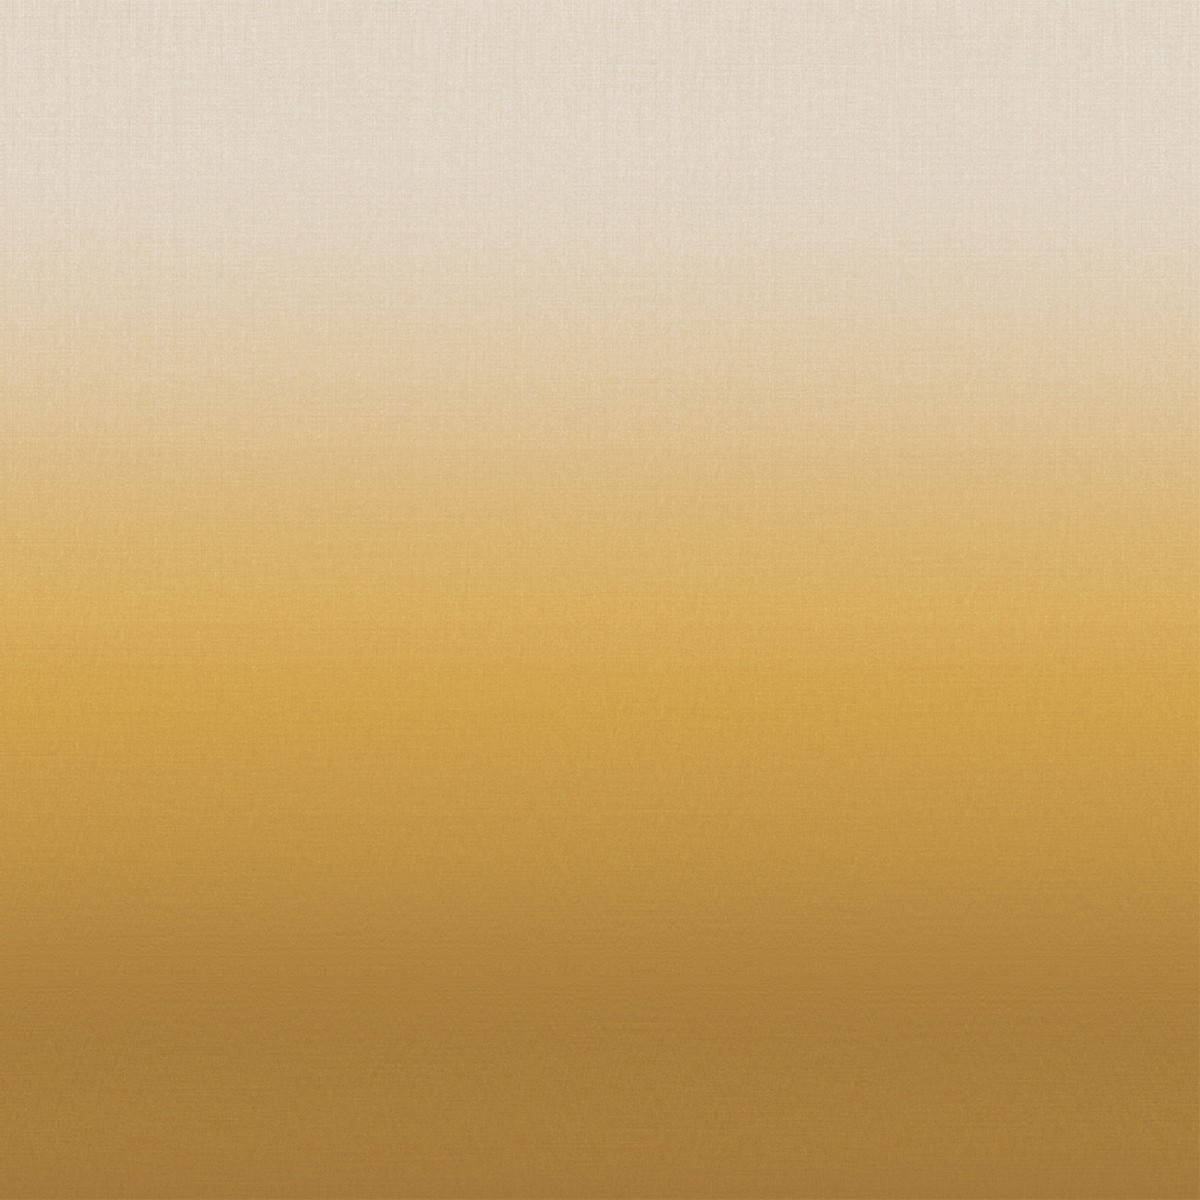 Horizon in the colourway ochre